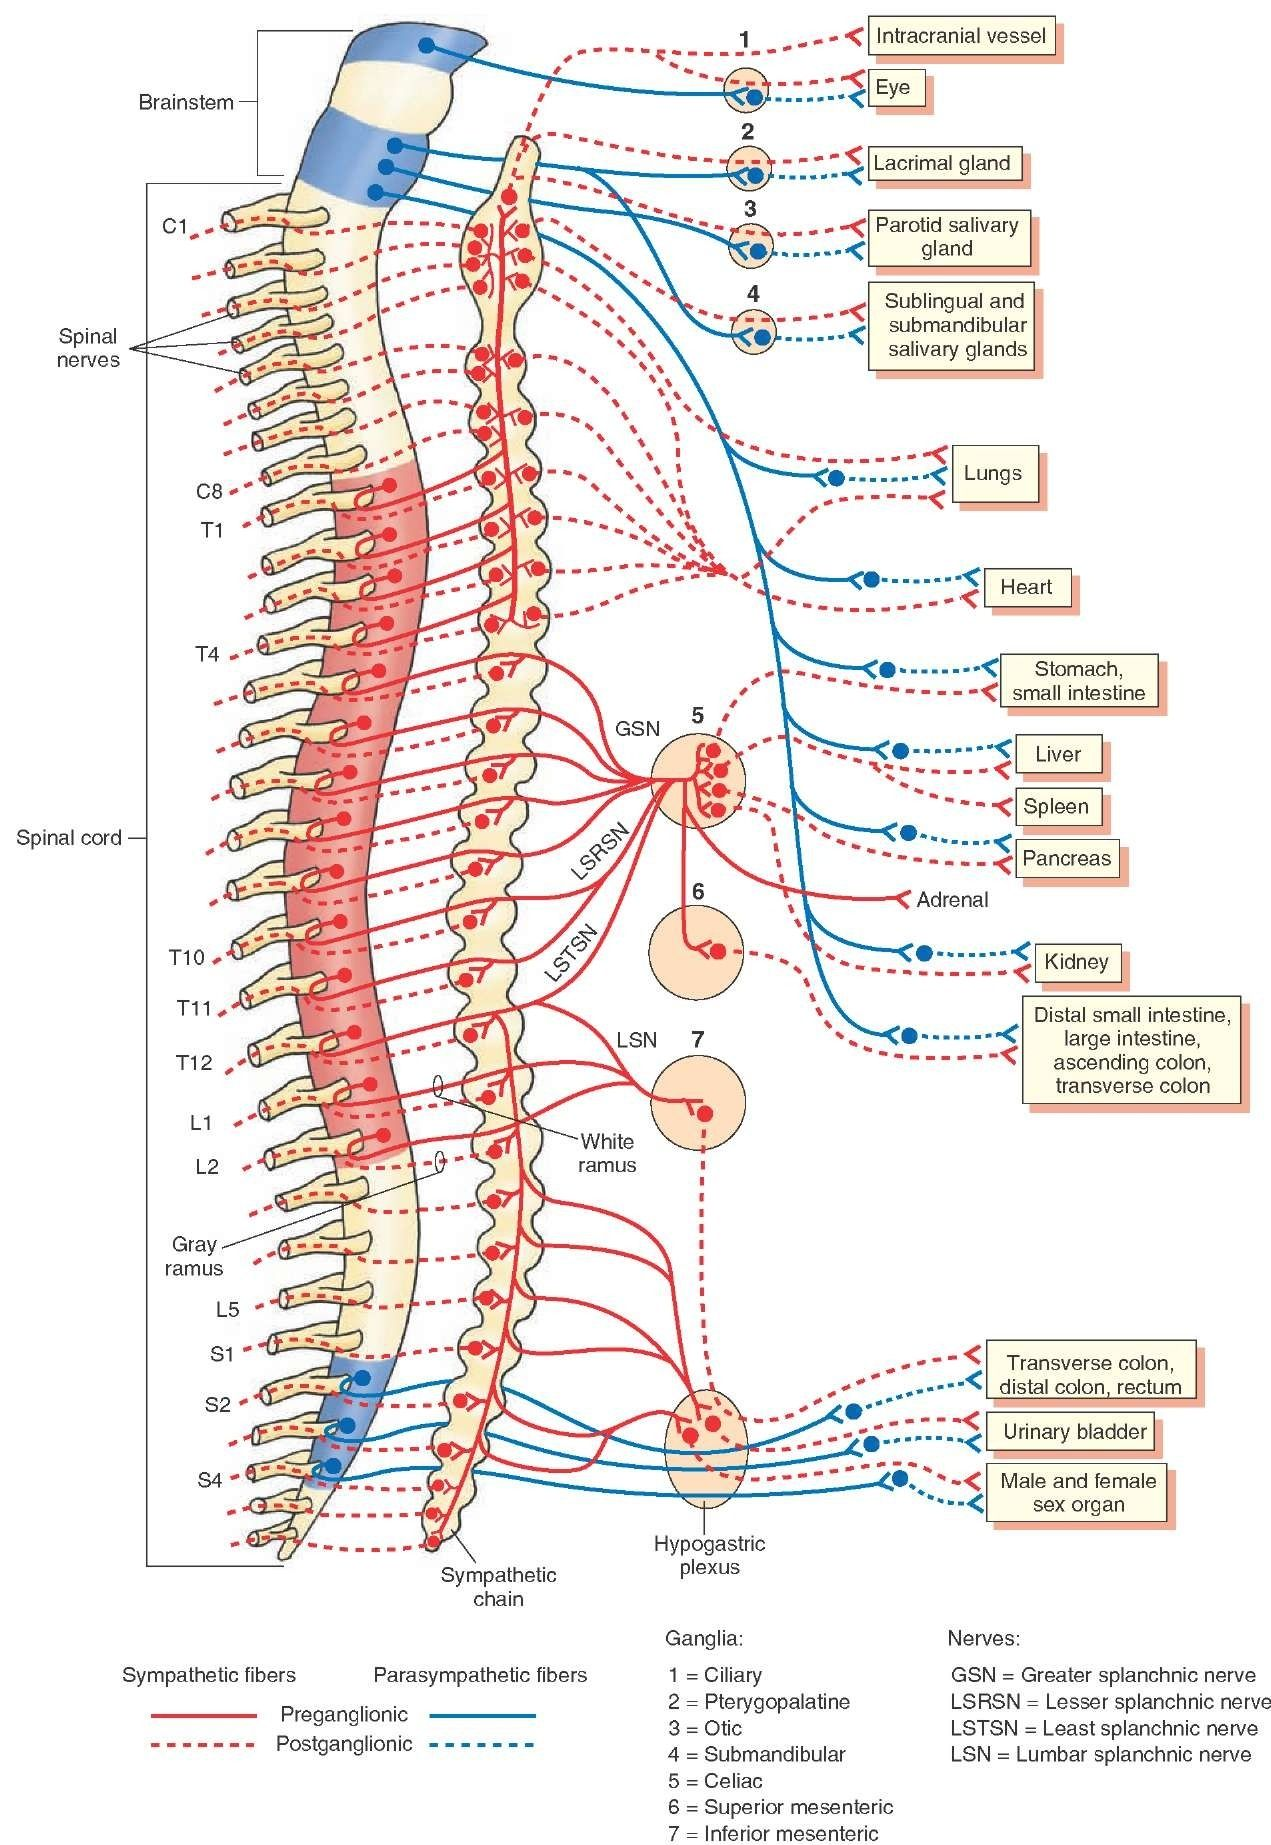 L4 Nerve Pain Diagram Needs And Wants Venn Innervation Of The Thoracic Spine Autonomic